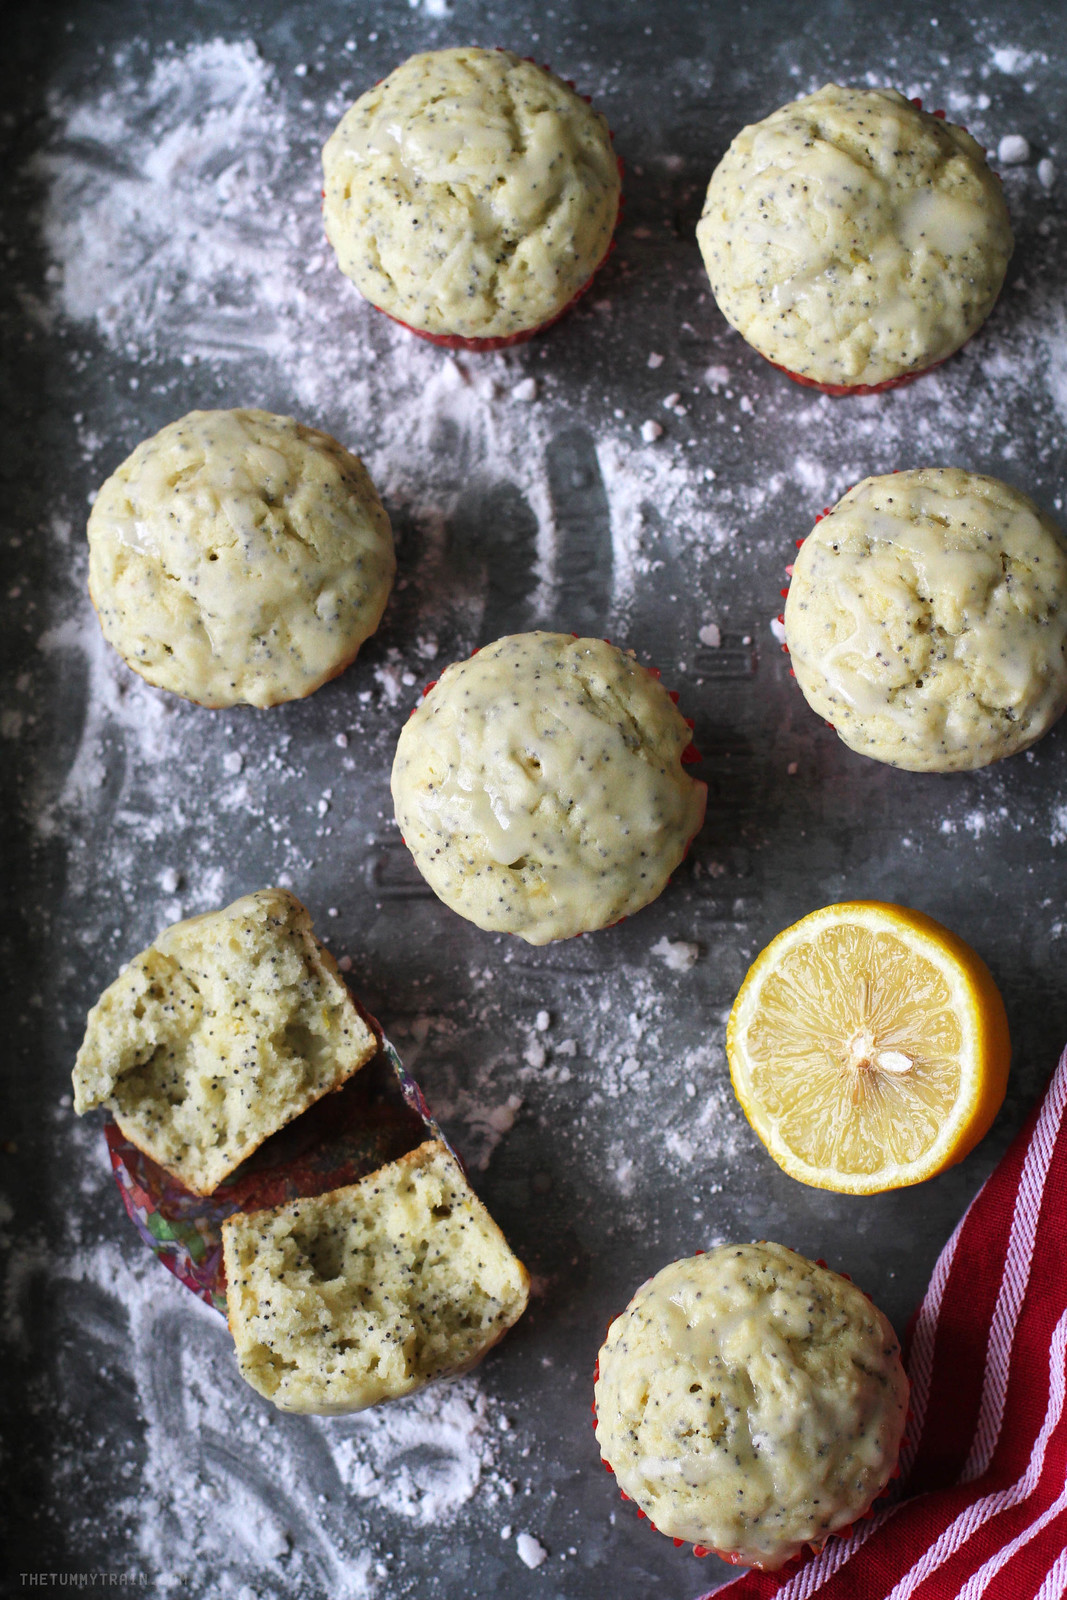 25010662592 c2651ac6ba h - Getting personal with these Lemon Poppyseed Muffins